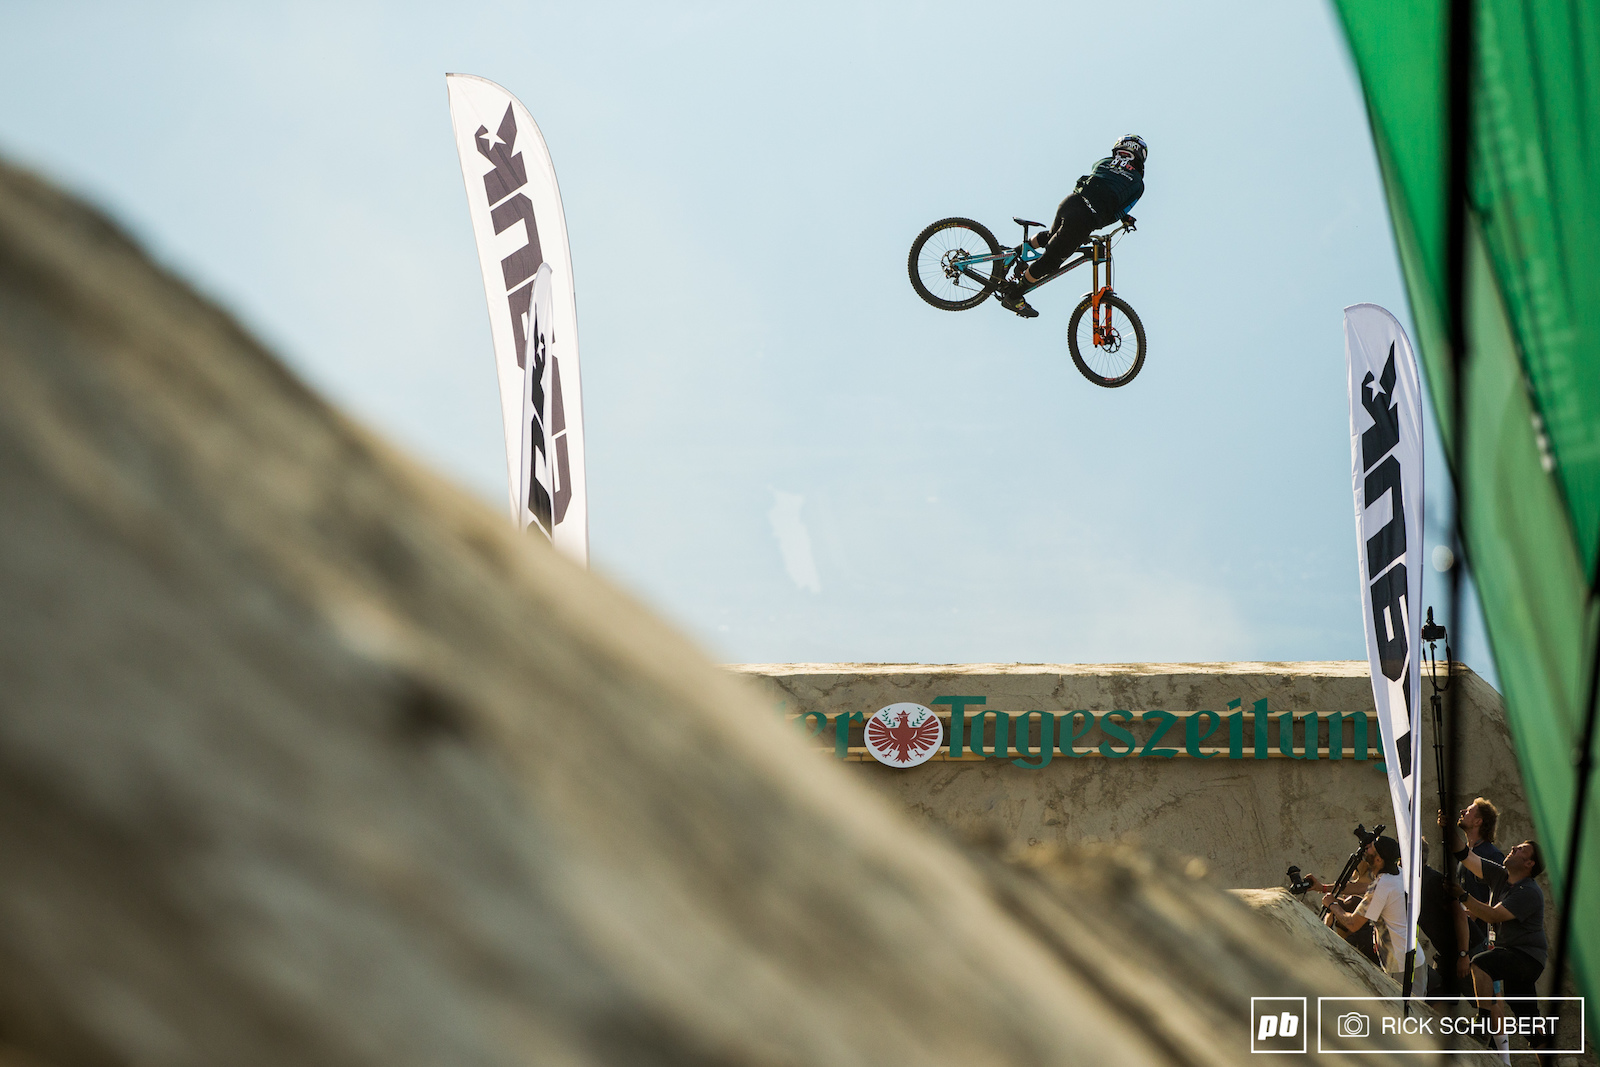 Current World Champ Danny Hart pulled some of the gnarliest whips